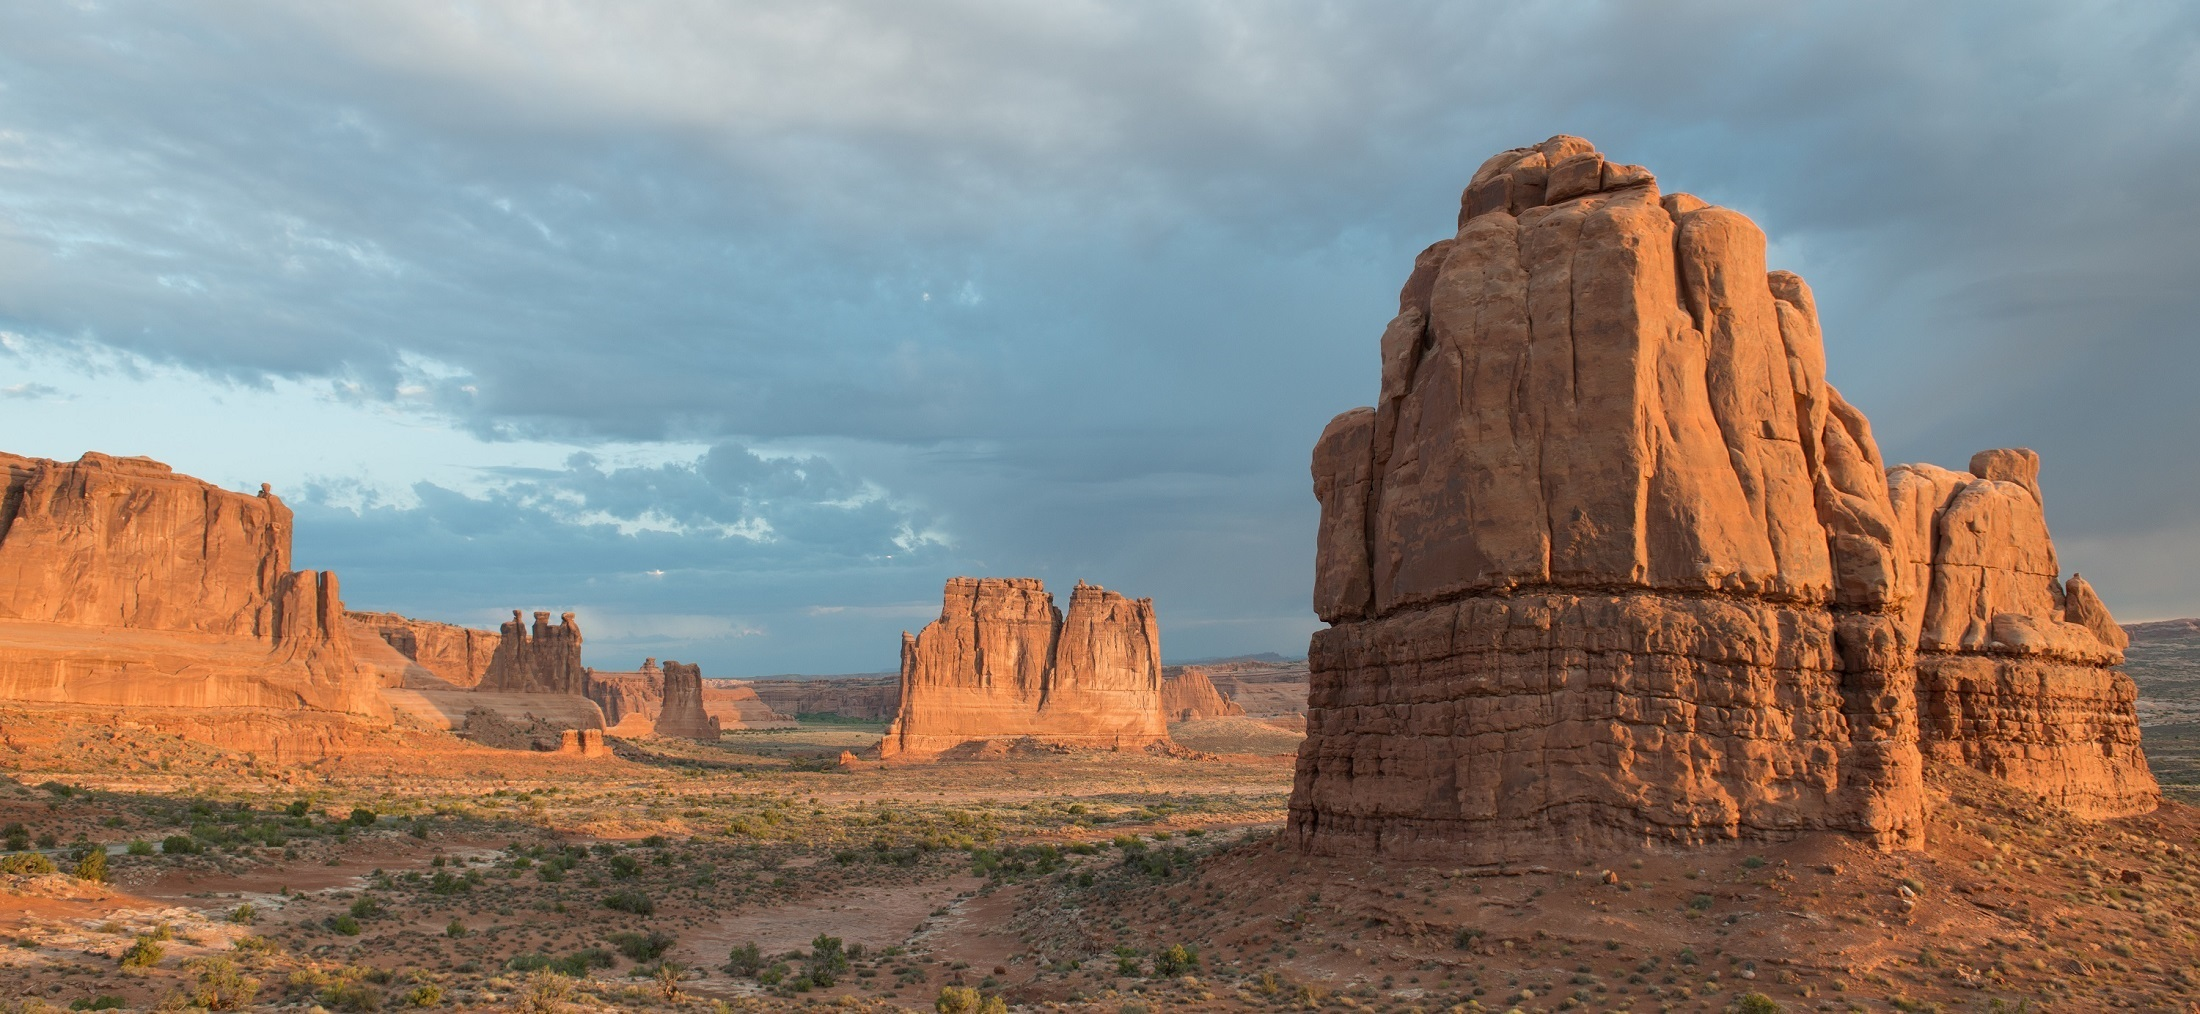 arches national park, utah, usa wallpaper and background image